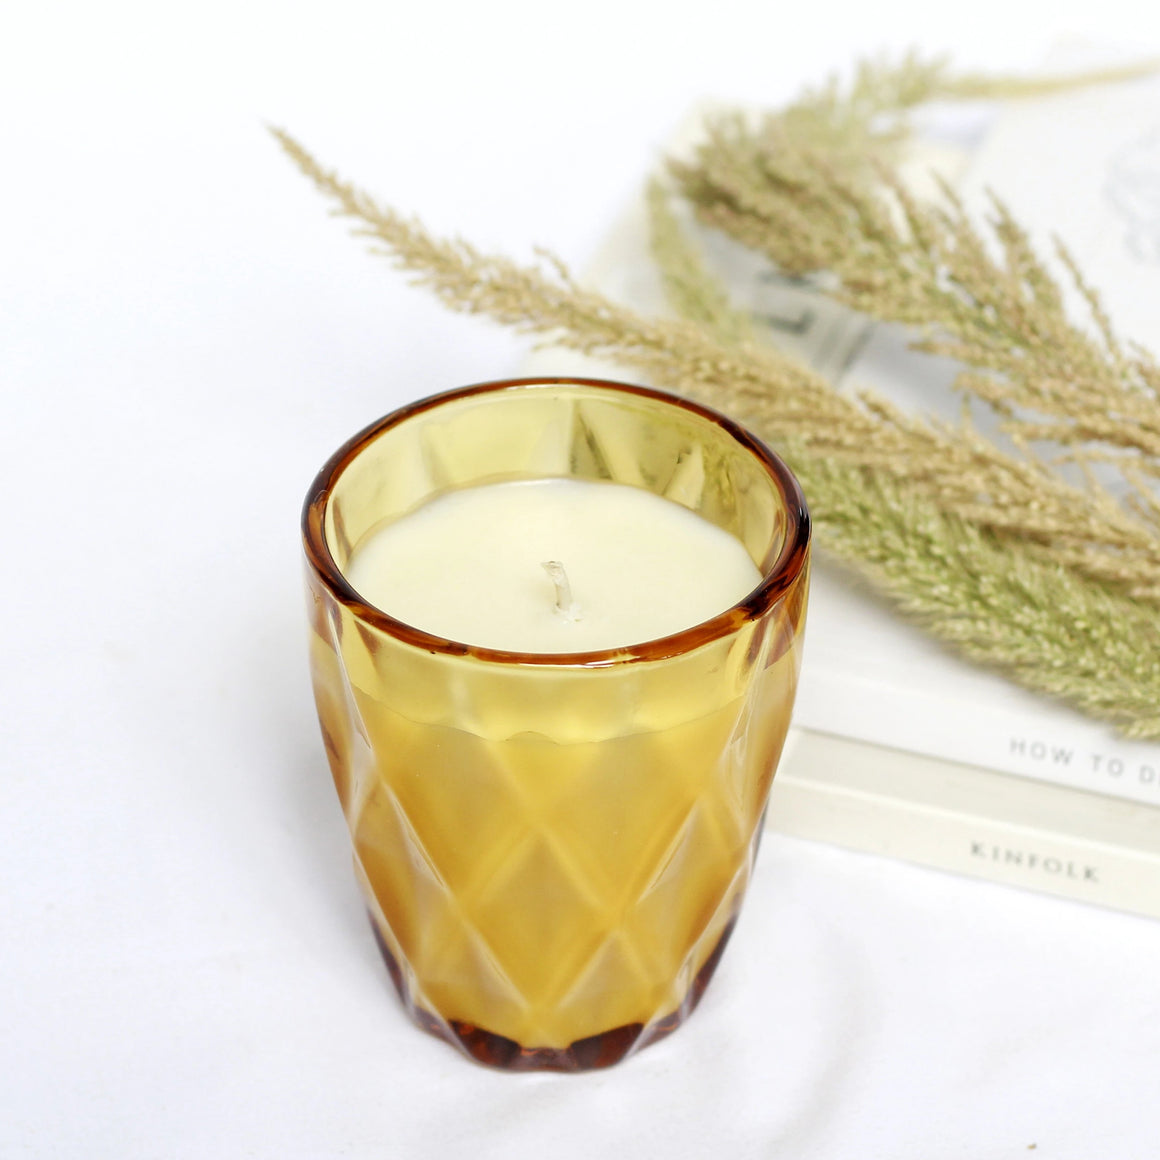 Soy Candle in Limited Edition Amber Glass: A Collab with A la Fourchette